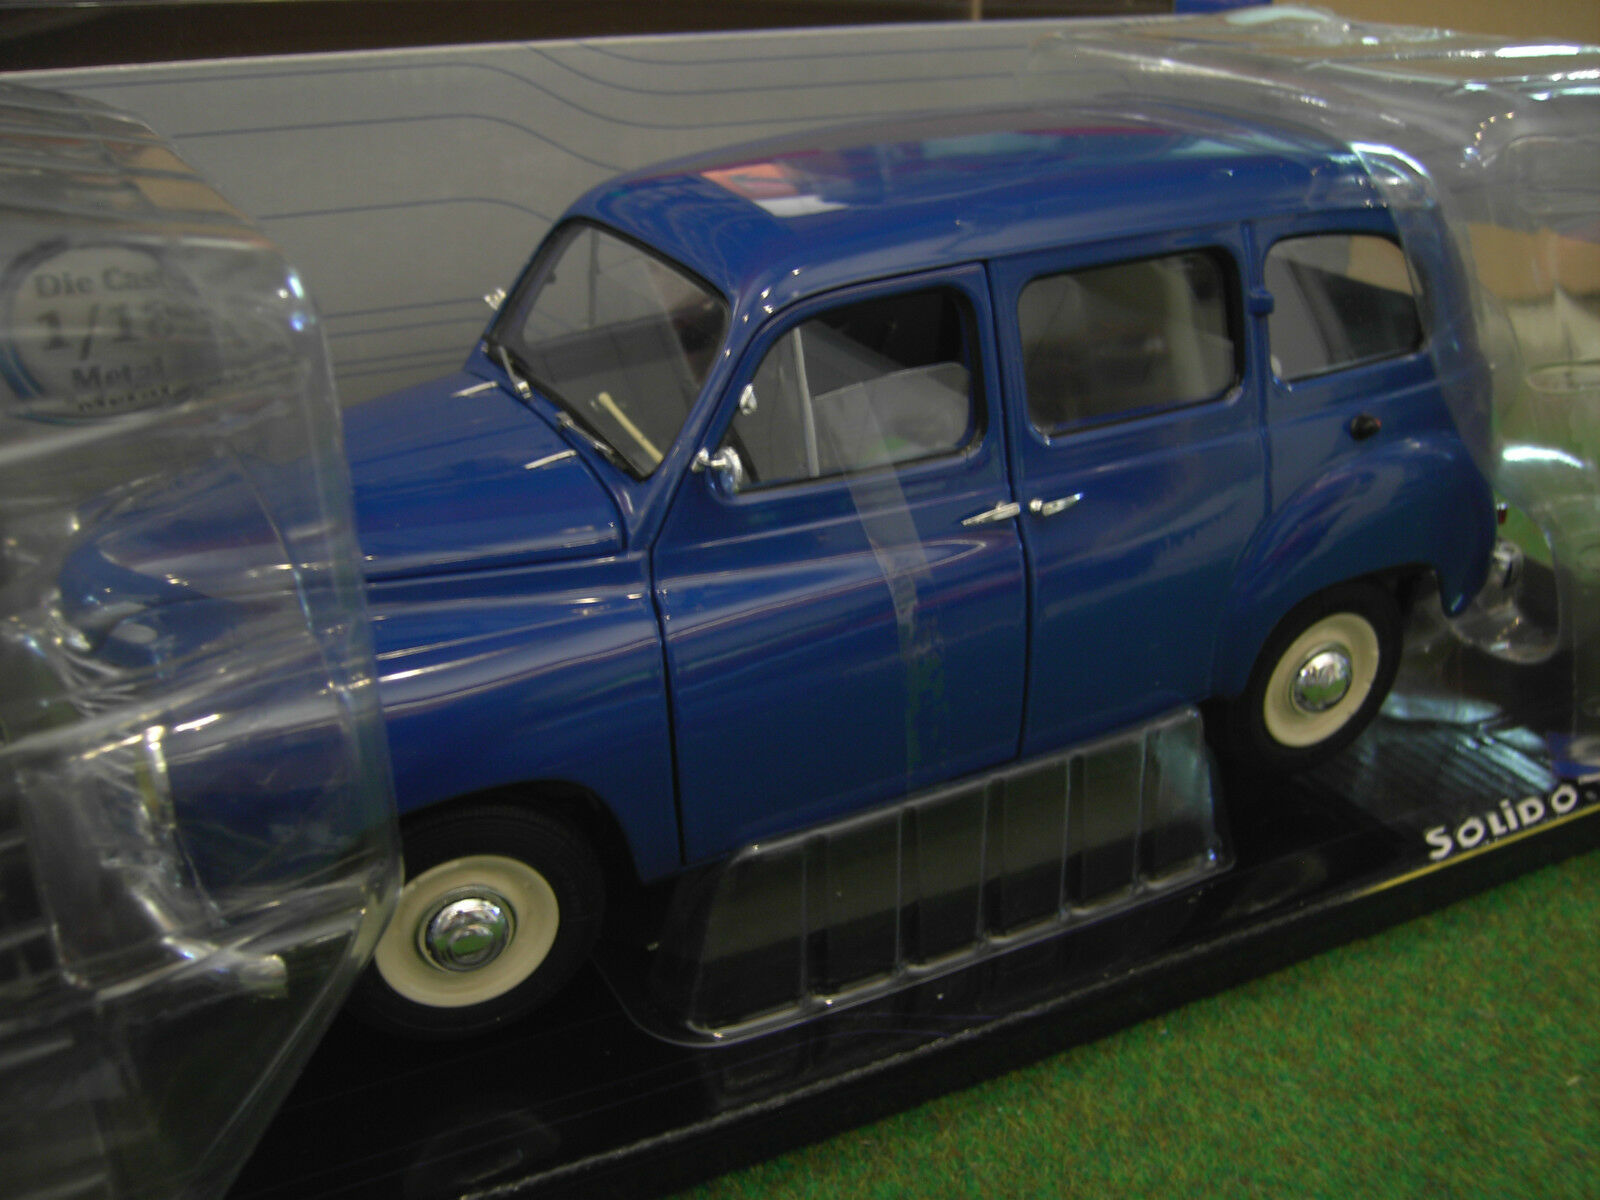 RENAULT COLORALE PRAIRIE 1953 1/18 SOLIDO 421183520 voiture miniature collection